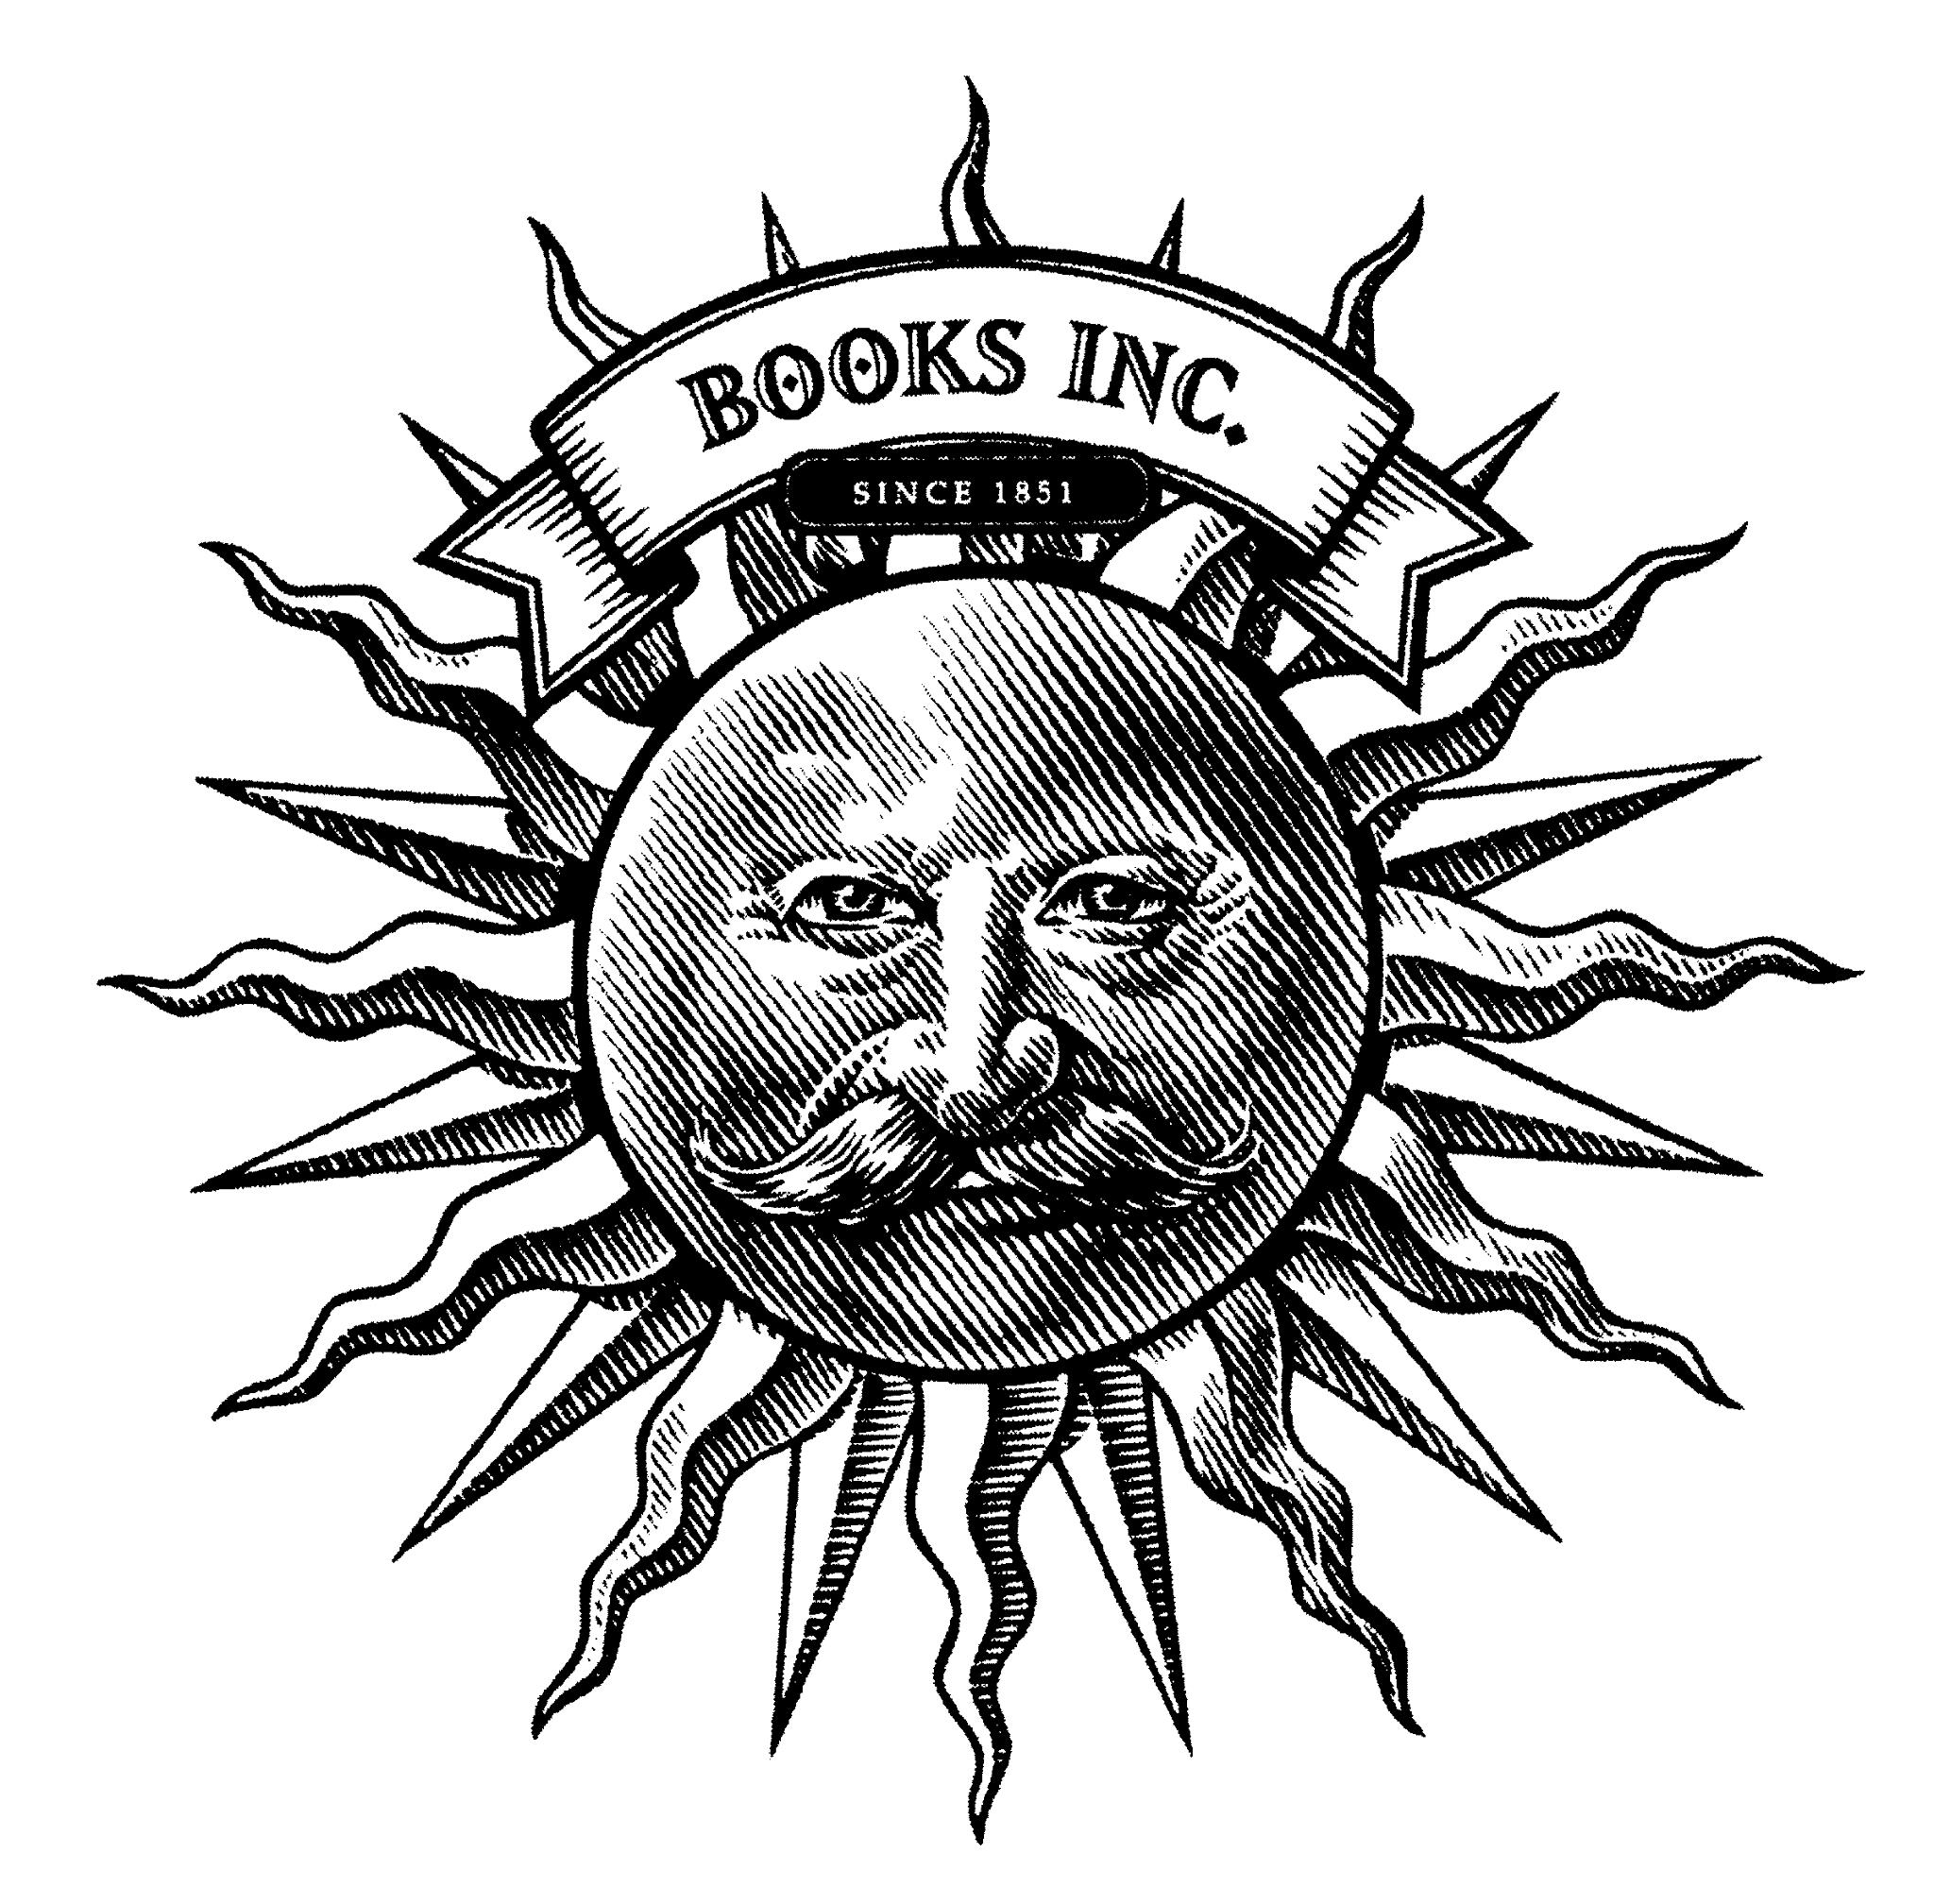 Books Inc To Open In Silicon Valley New Owners For